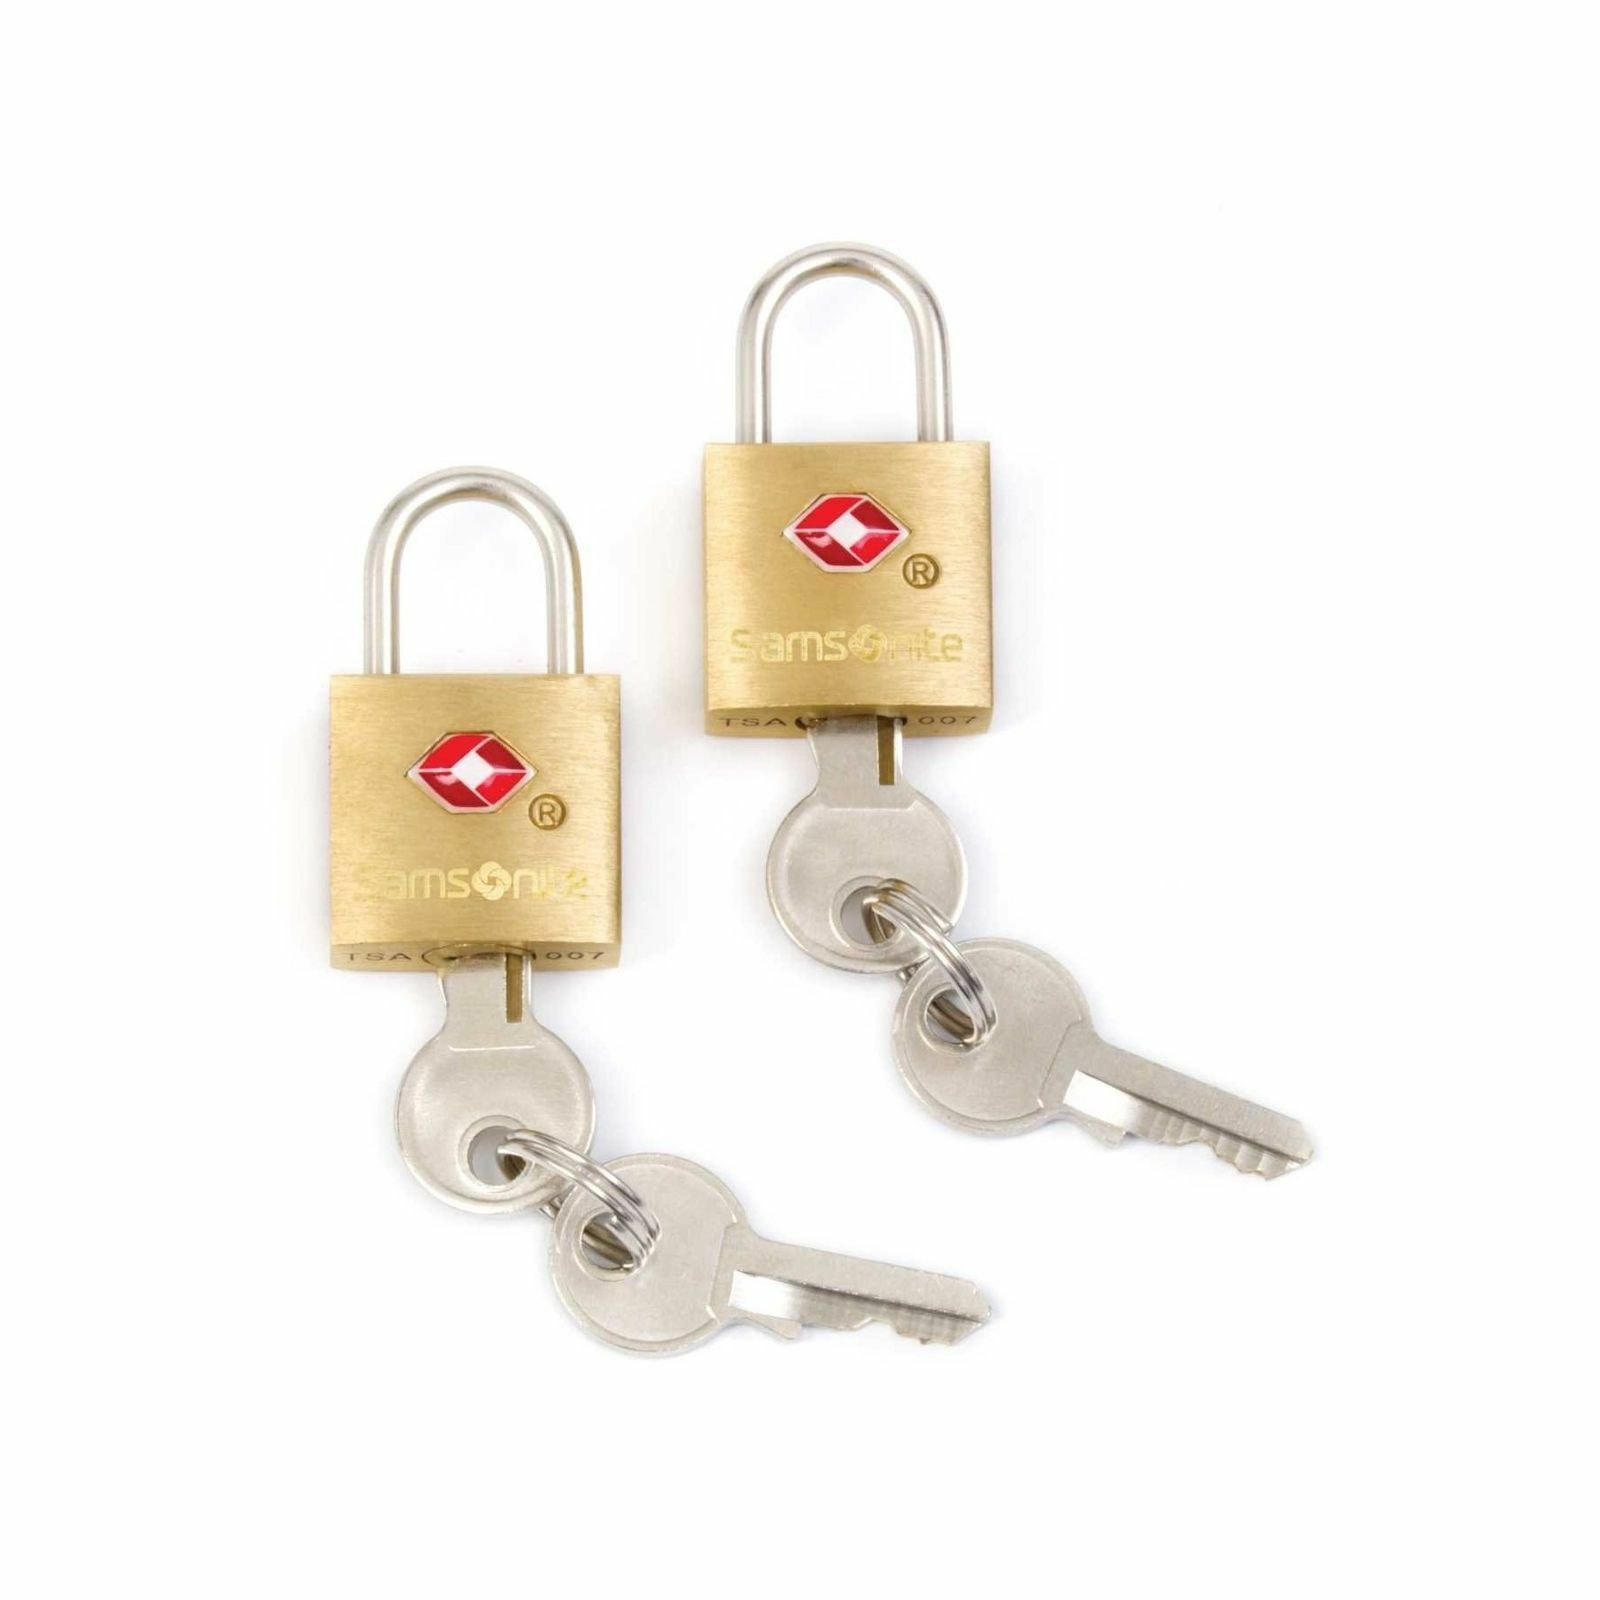 Samsonite Travel Sentry 2-pack Key Locks Varsity Red